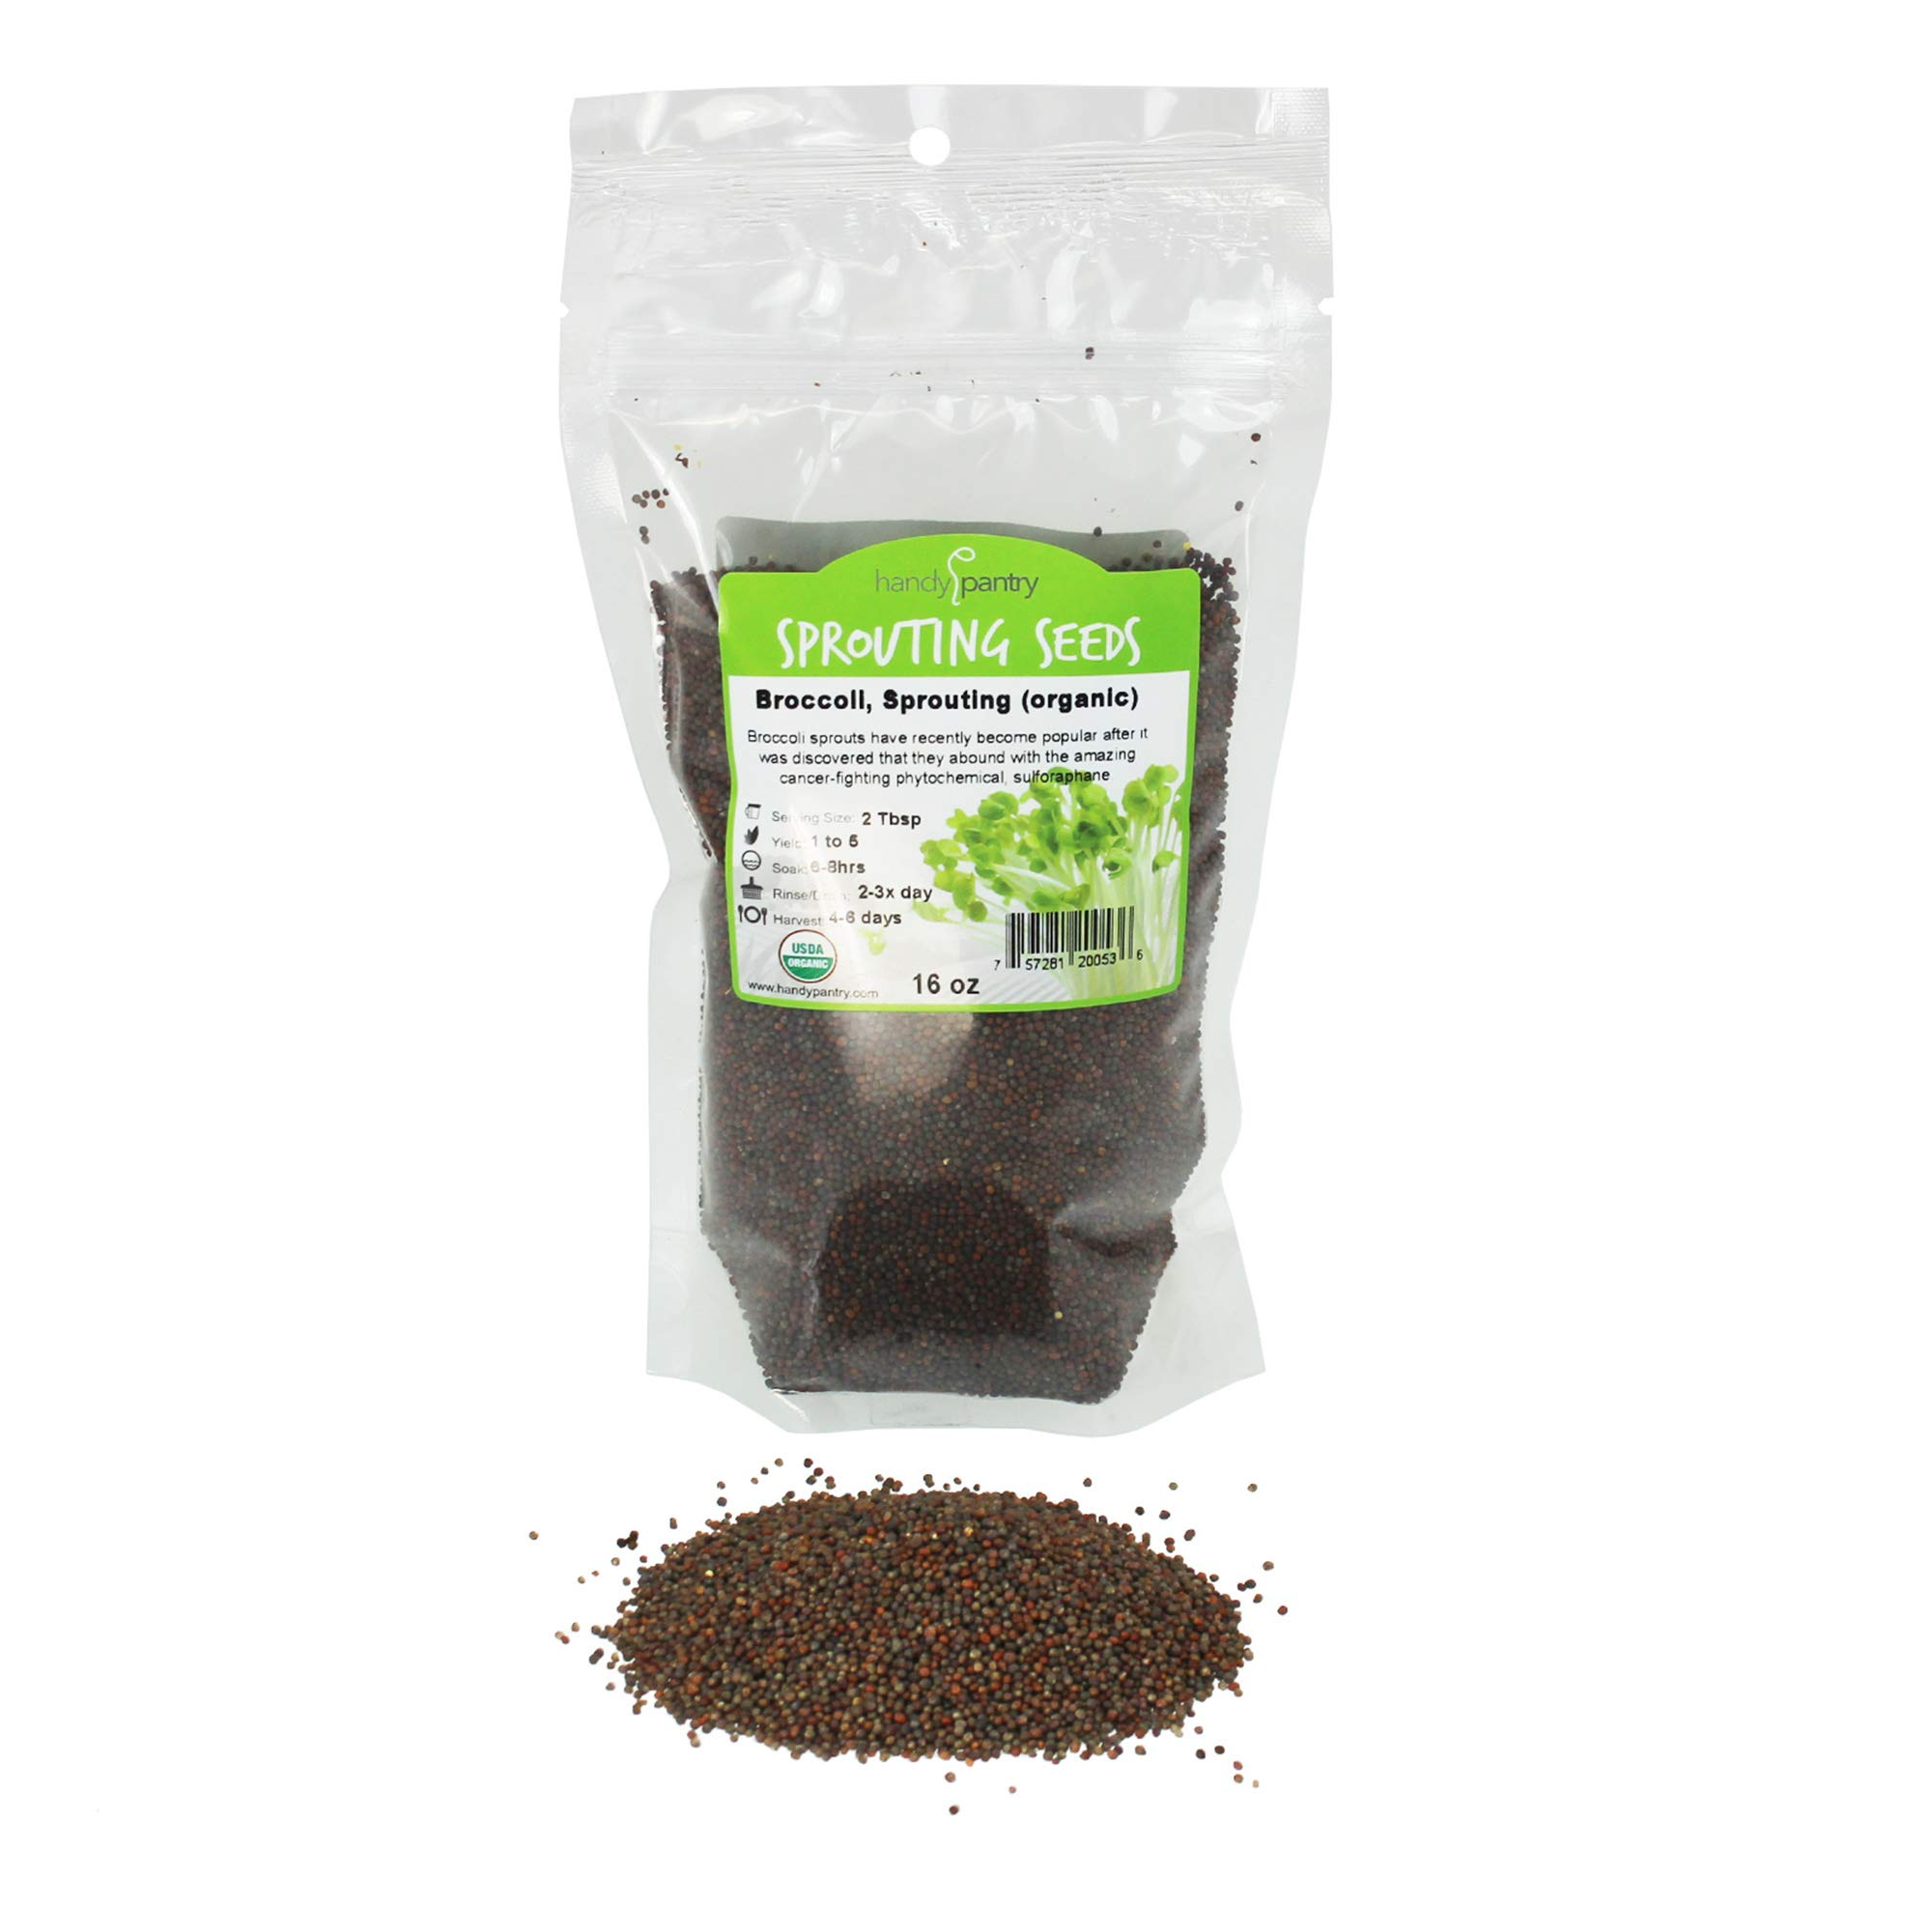 Organic Broccoli Sprouting Seeds By Handy Pantry | 1 Pound Resealable Bag| | Non-GMO Broccoli Sprouts Seeds, Contain Sulforaphane by Handy Pantry